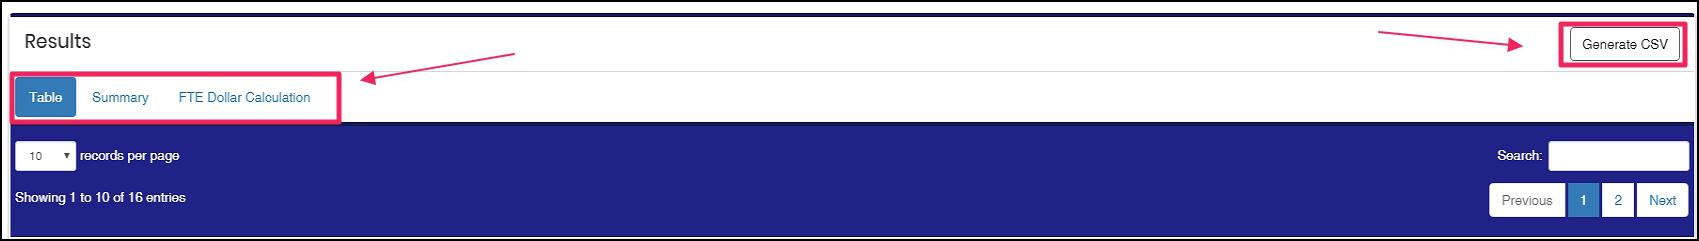 image showing view options 'Table', 'Summary', and 'FTE Dollar Calculation' and Generate CSV button